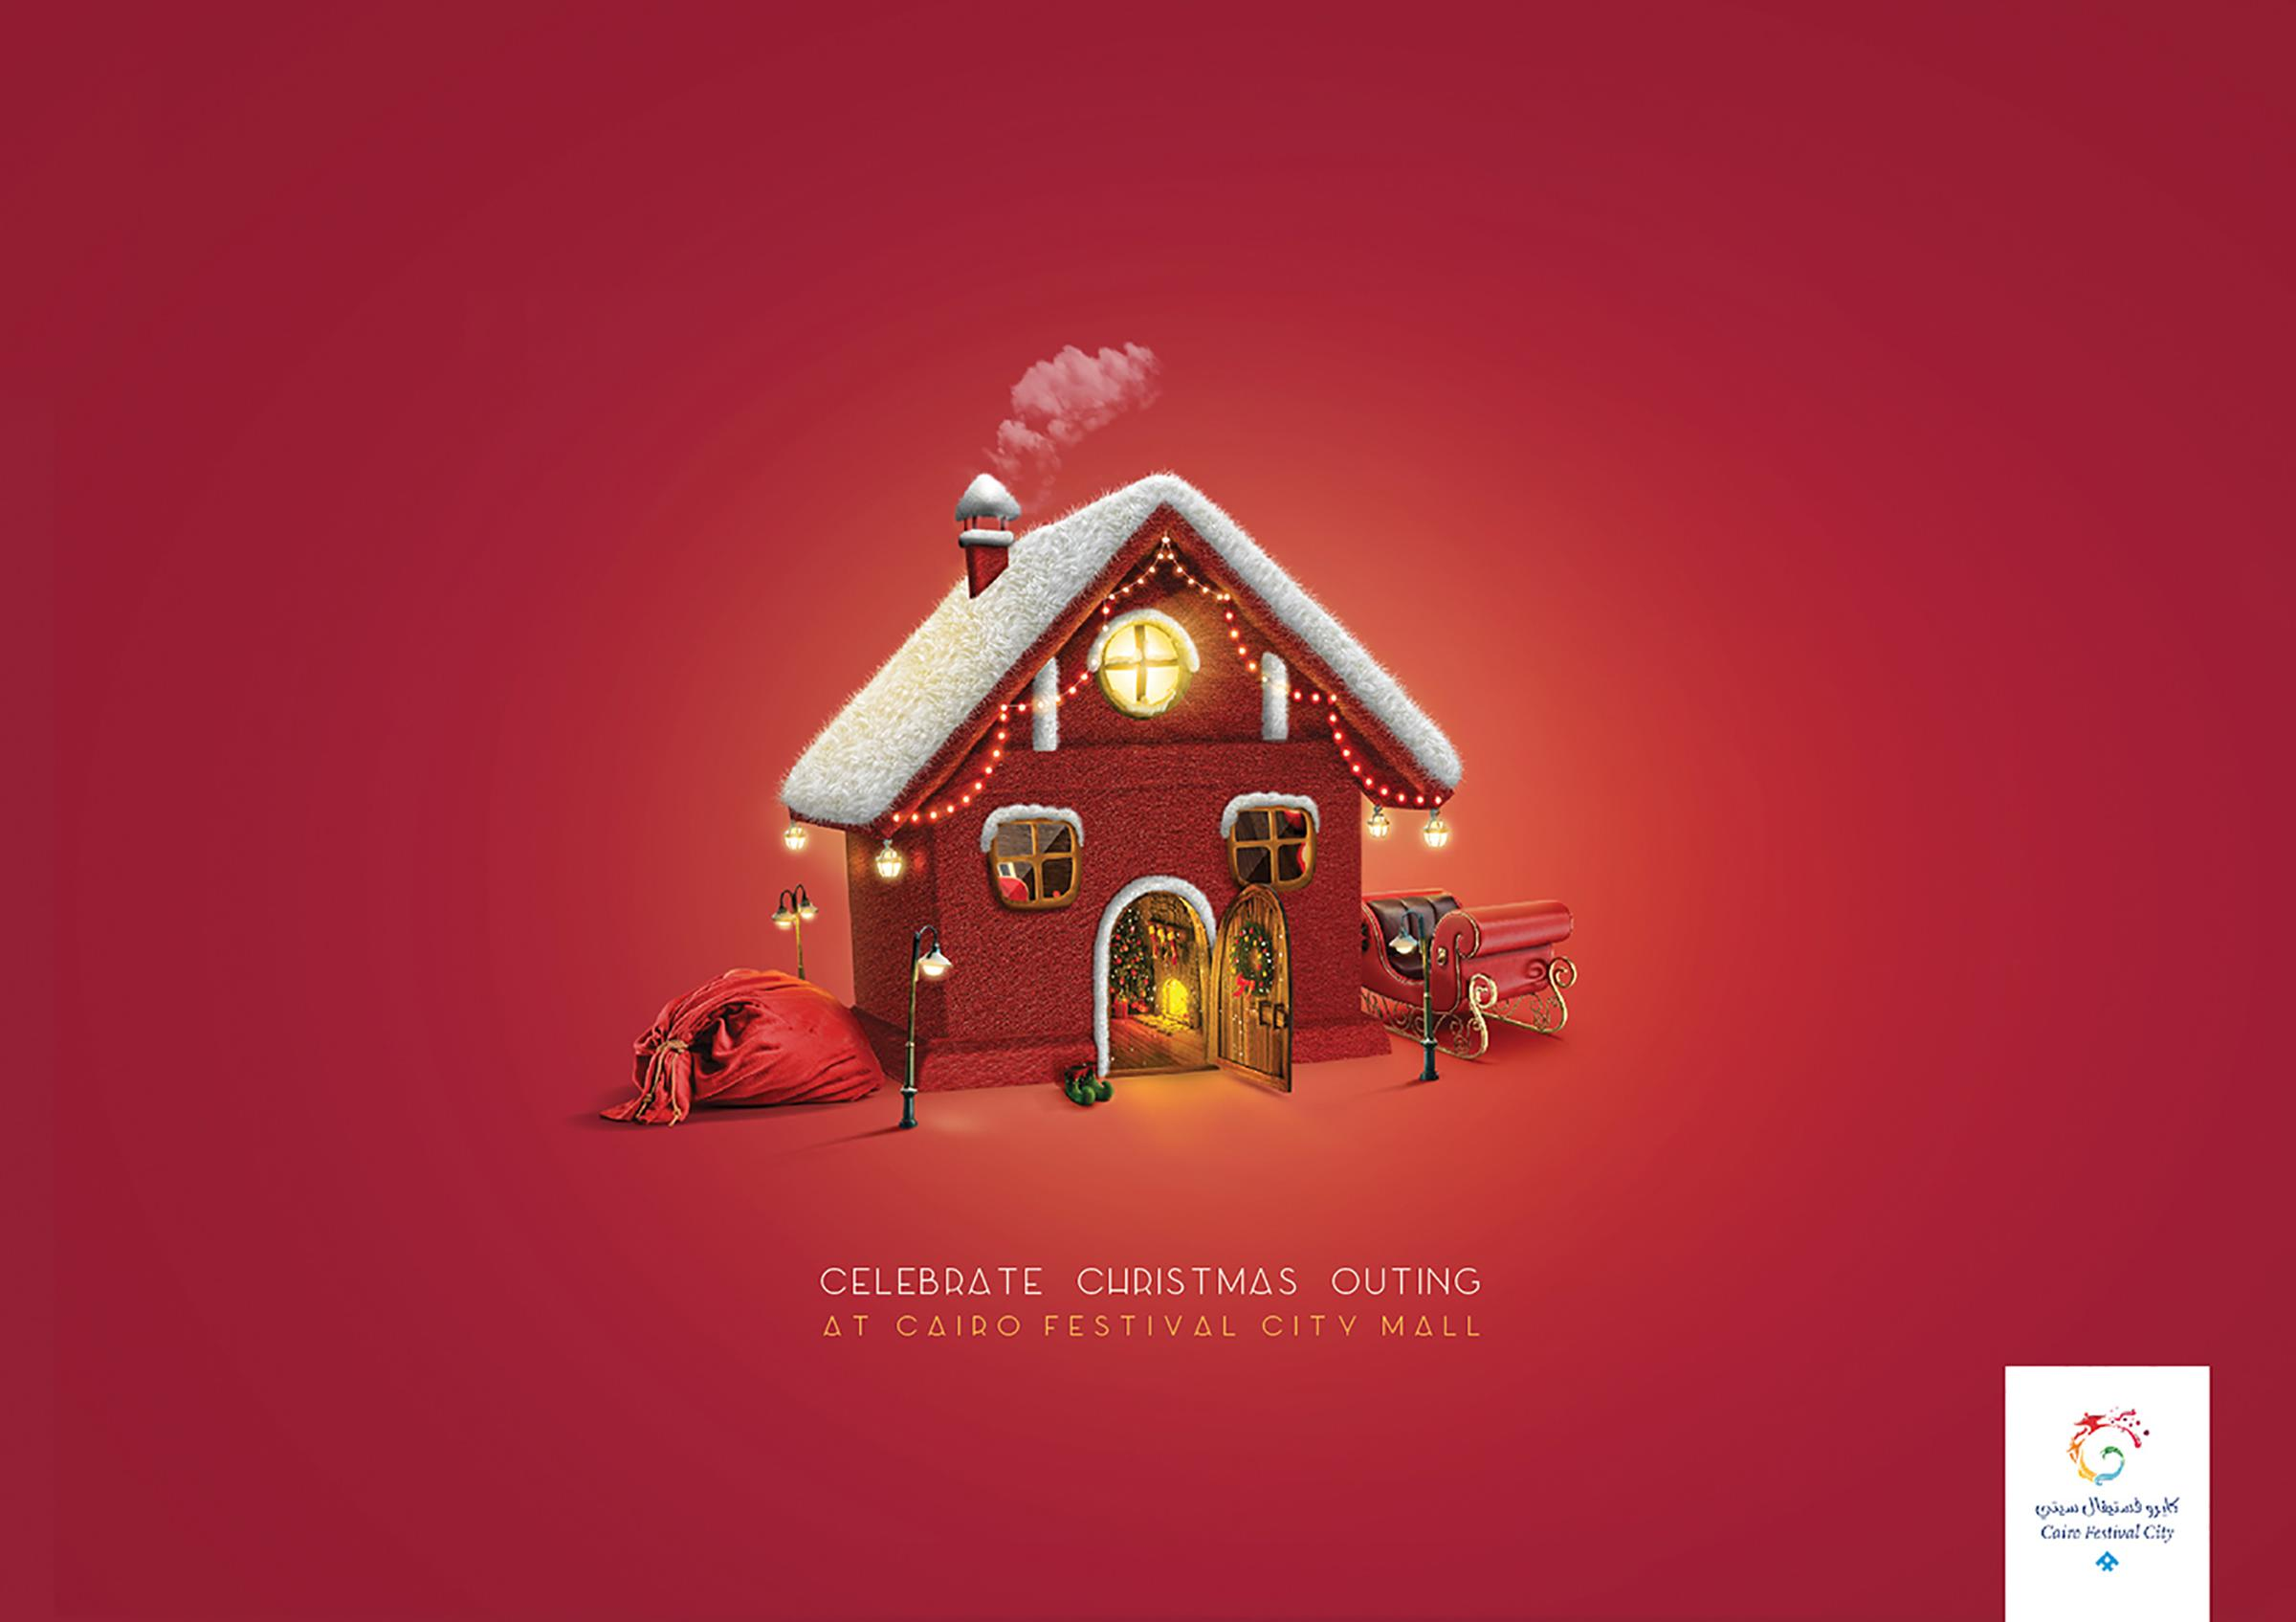 Cairo Festival City Mall Print Ad - Gingerbread house